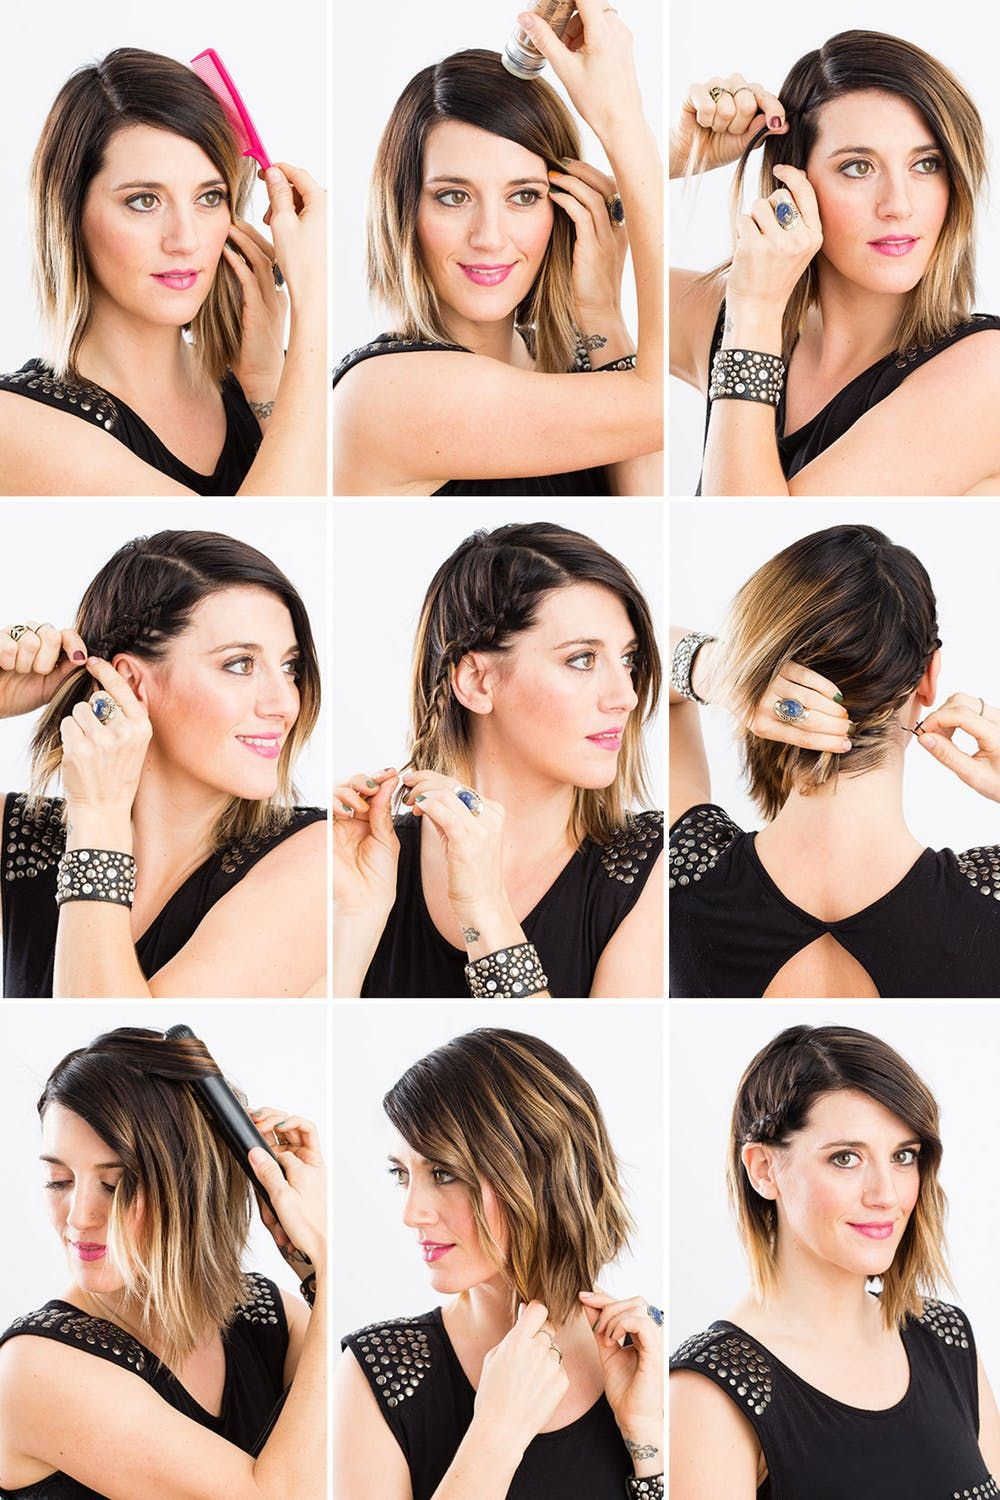 5 Minute Braid Diy Cara D S Side Braid For Your Holiday Party Short Hair Styles Braids For Short Hair Medium Length Hair Styles